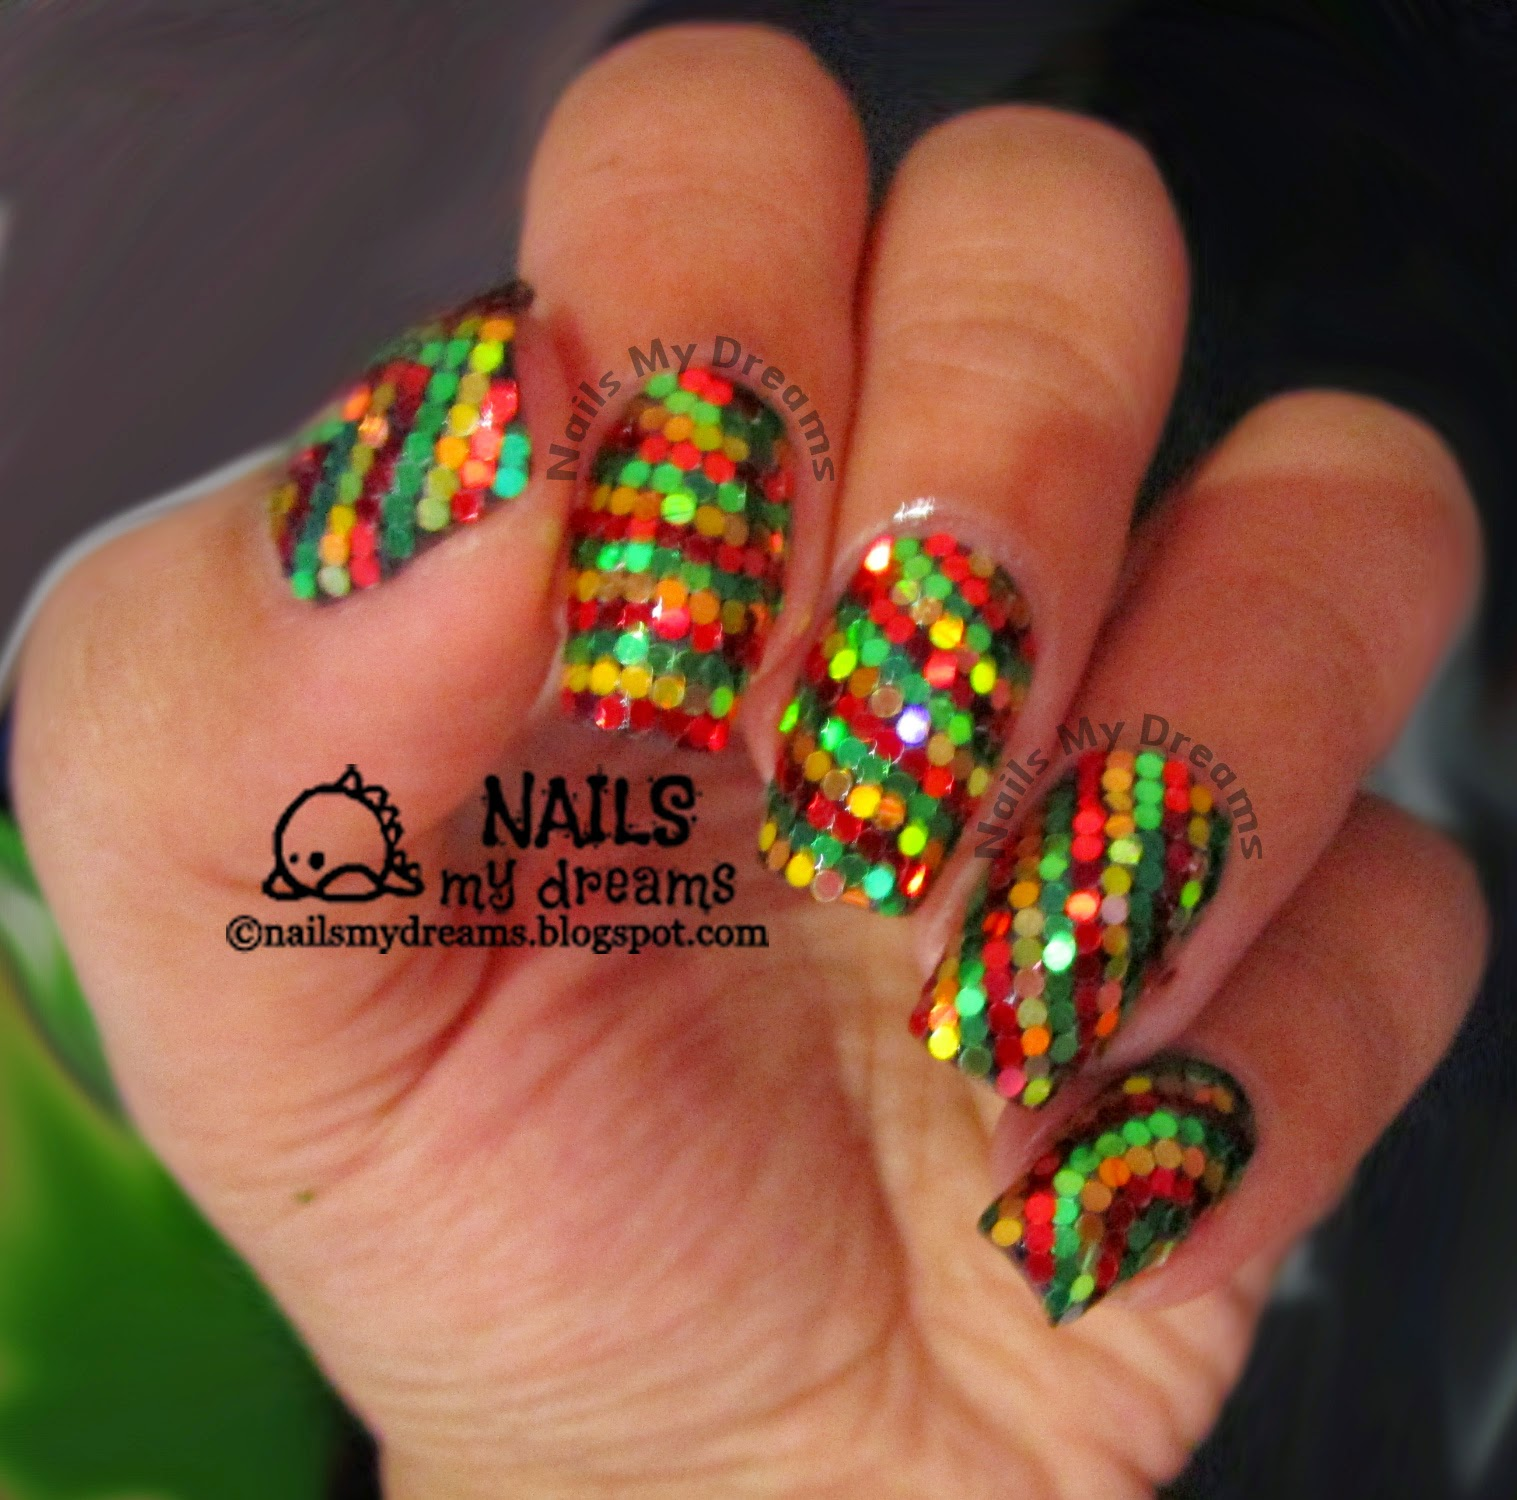 Nails My Dreams Reggaechristmas Inspired Glitter Placement Nail